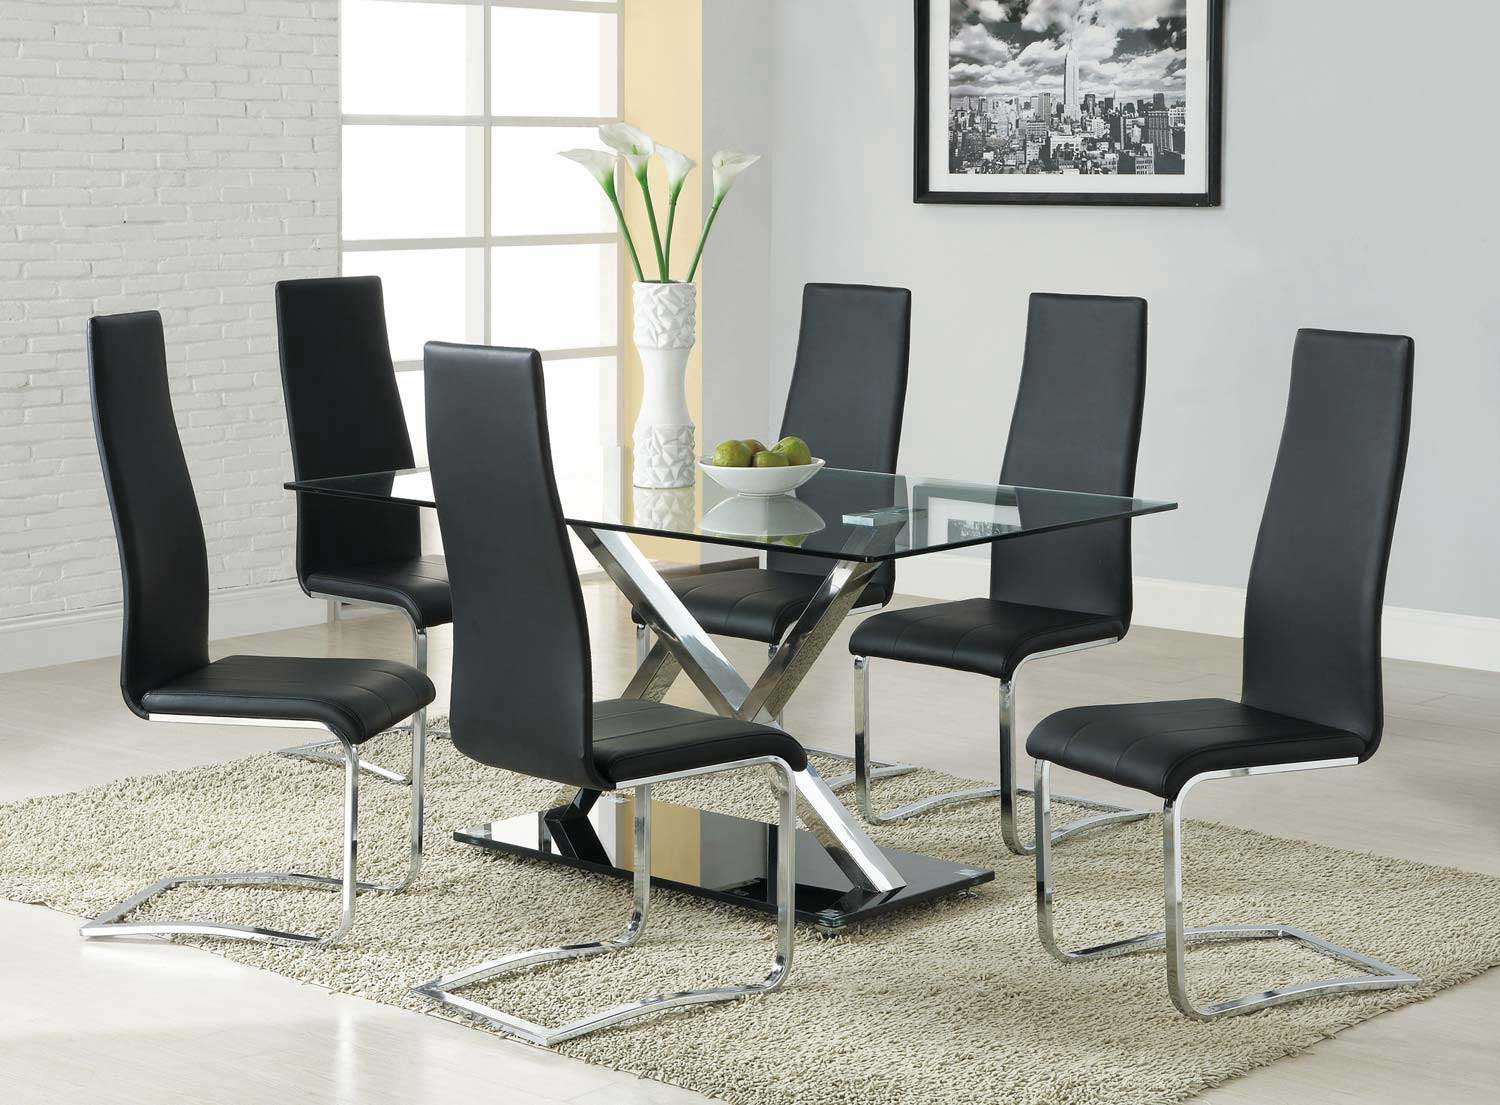 Coaster Mix & Match Metal Glass Top Dining Set - Black Chair